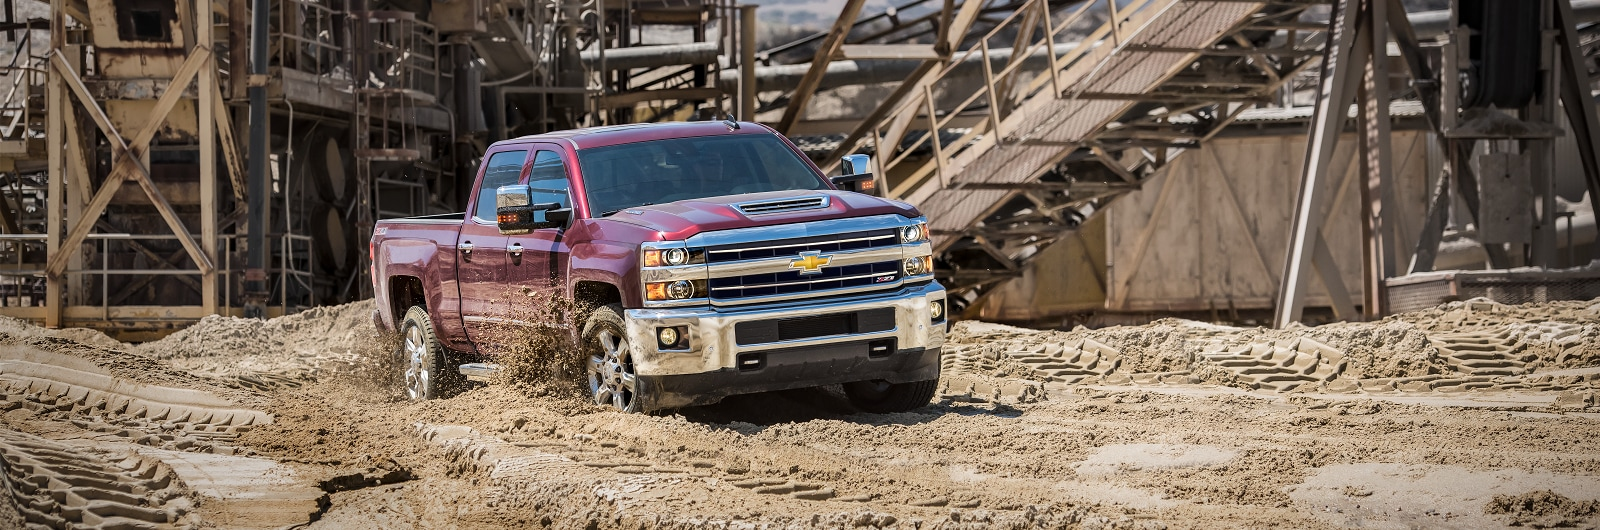 2018 Chevrolet Silverado 2500 HD for Sale in Vienna   Koons Tysons     2018 Chevrolet Silverado 2500 HD